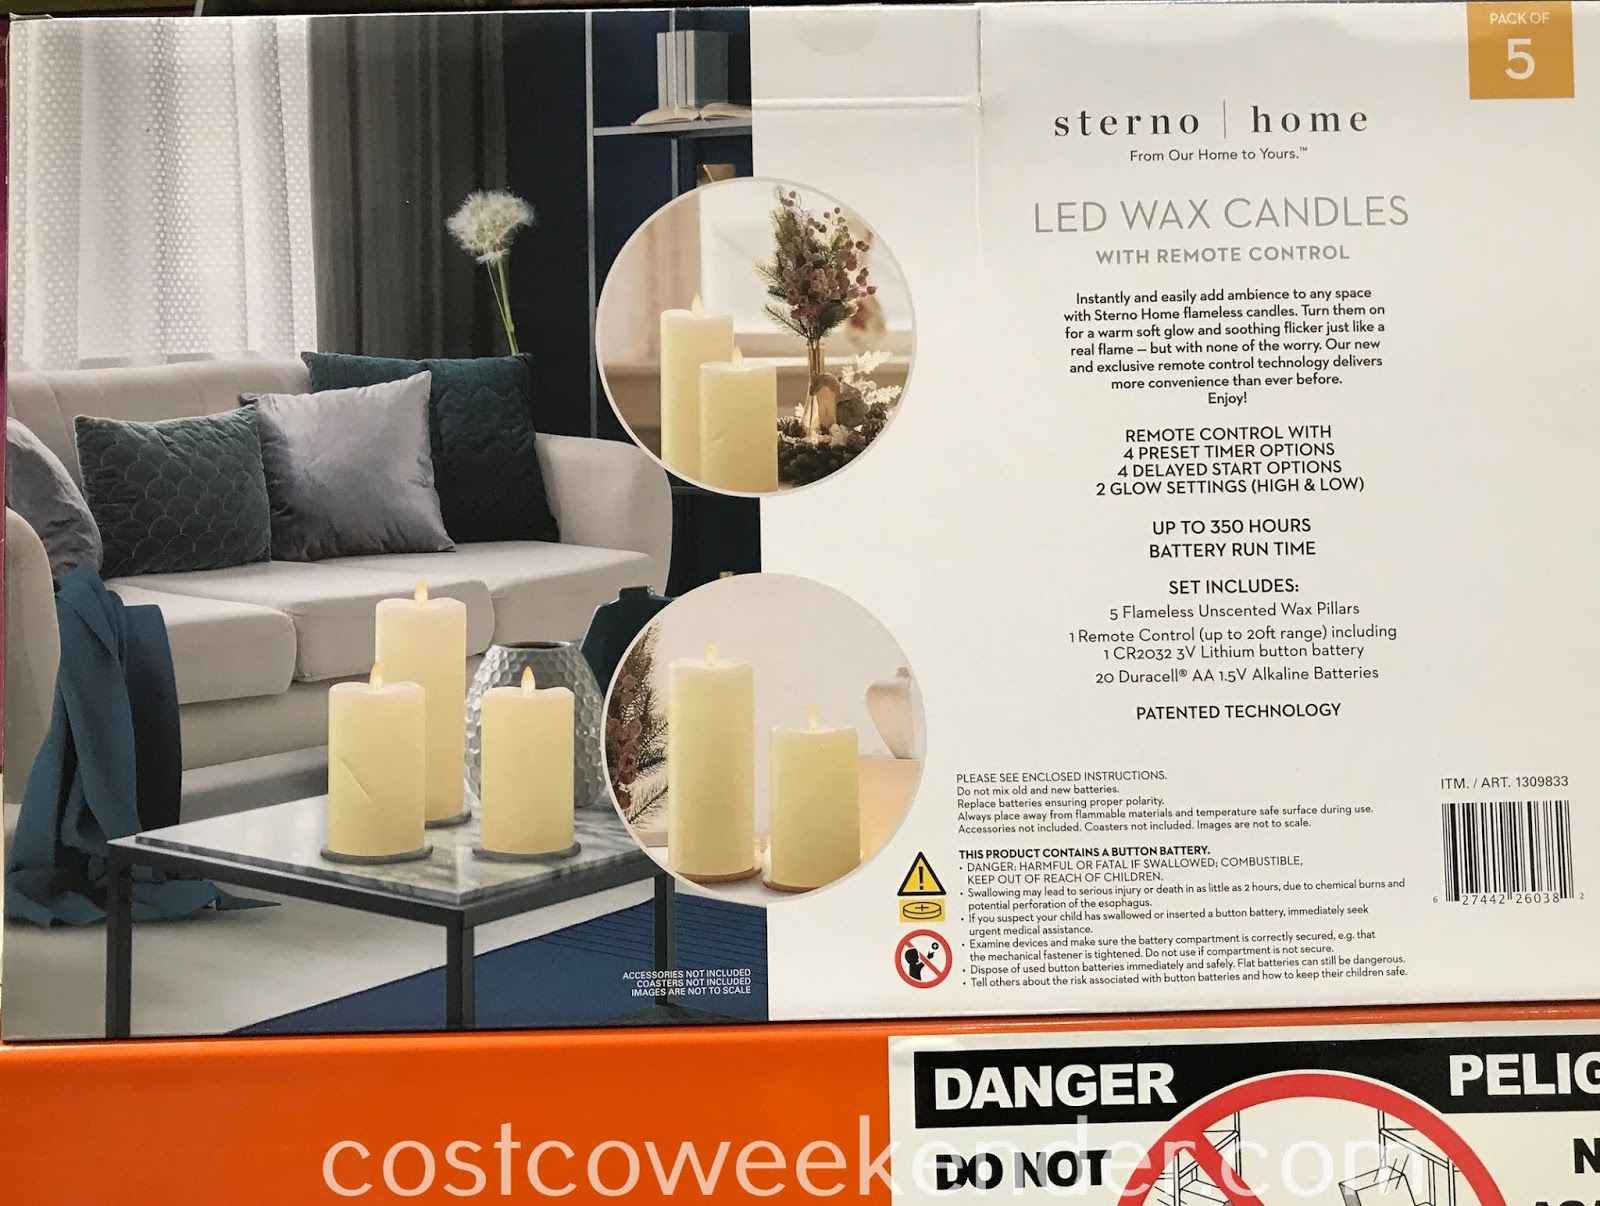 Costco 1309833 - Sterno Home 5-piece LED Wax Candles: safer than real candles